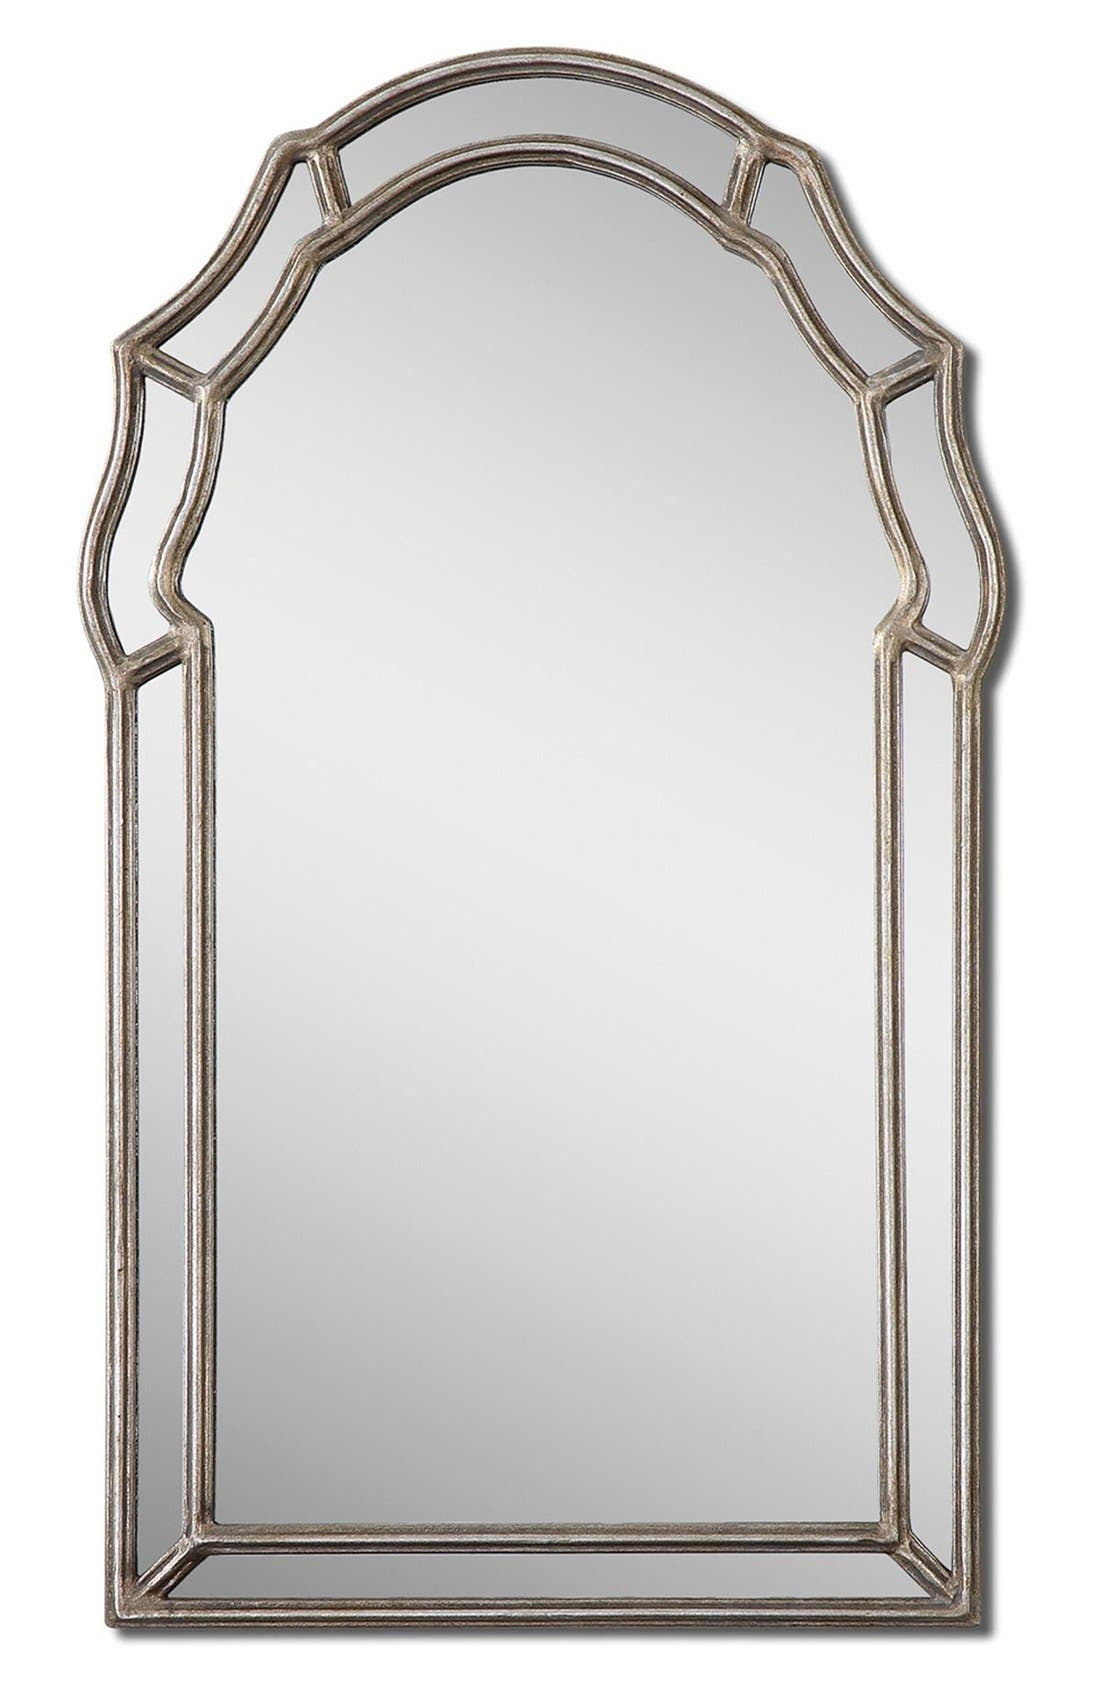 Alternate Image 1 Selected - Uttermost 'Petrizzi' Arch Mirror